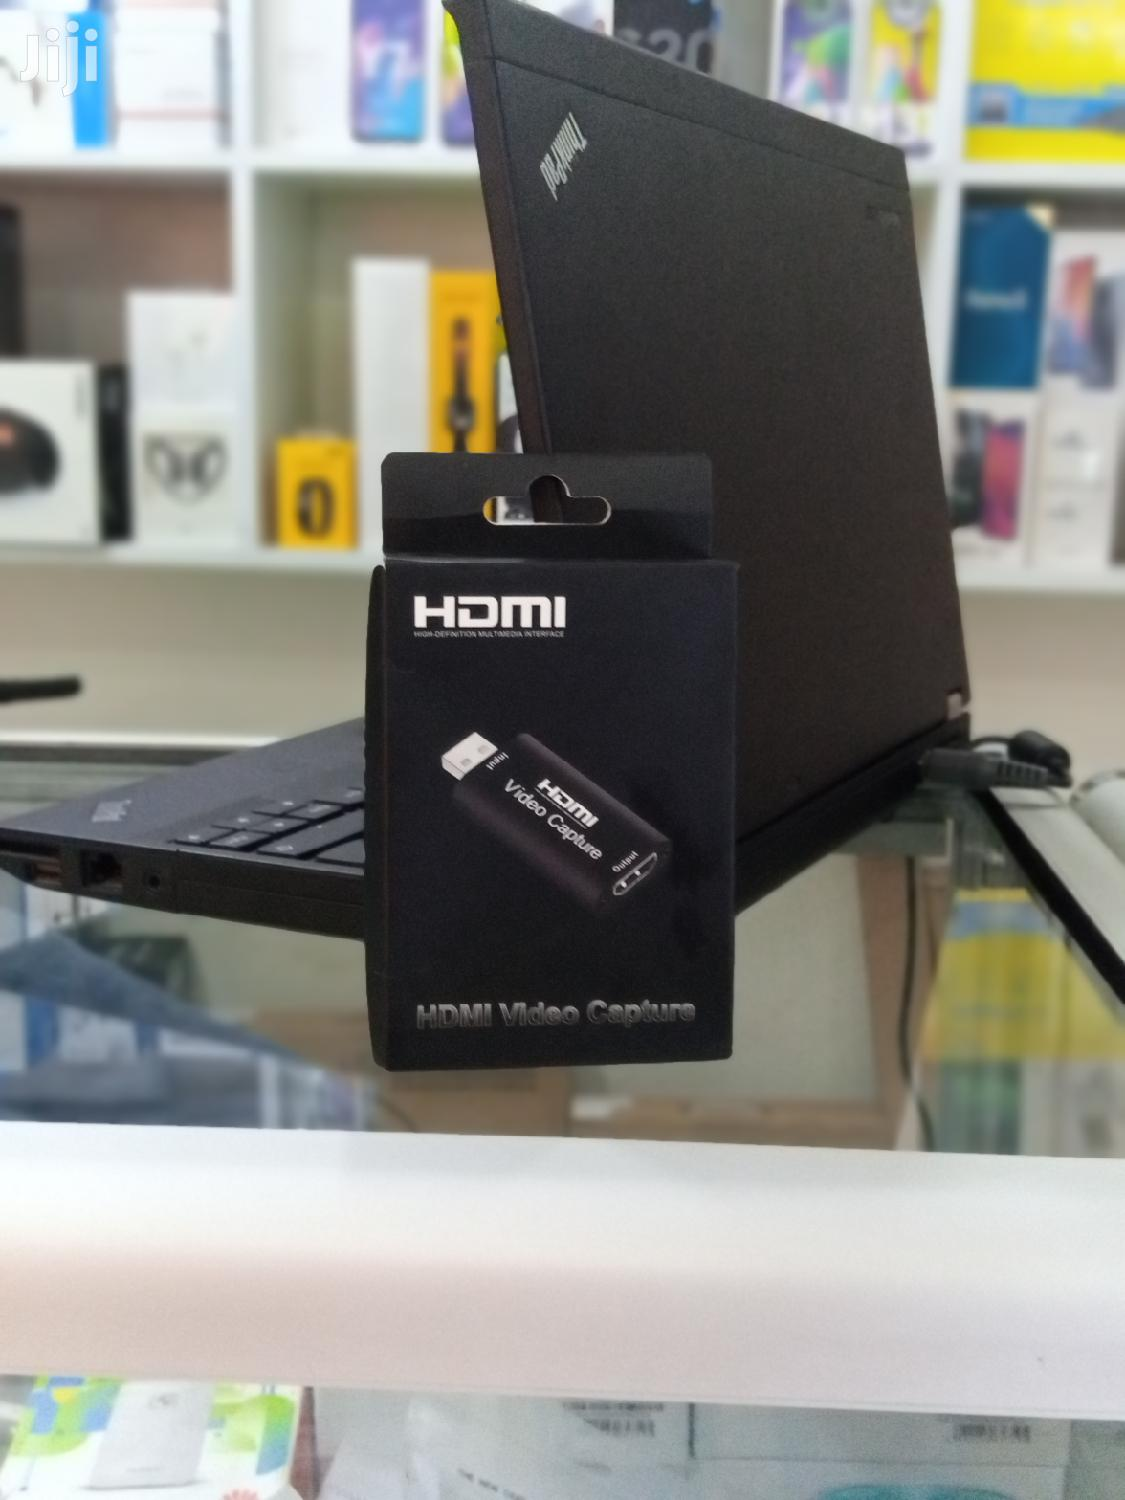 HDMI Video Capture Brand New And Sealed In A Shop.